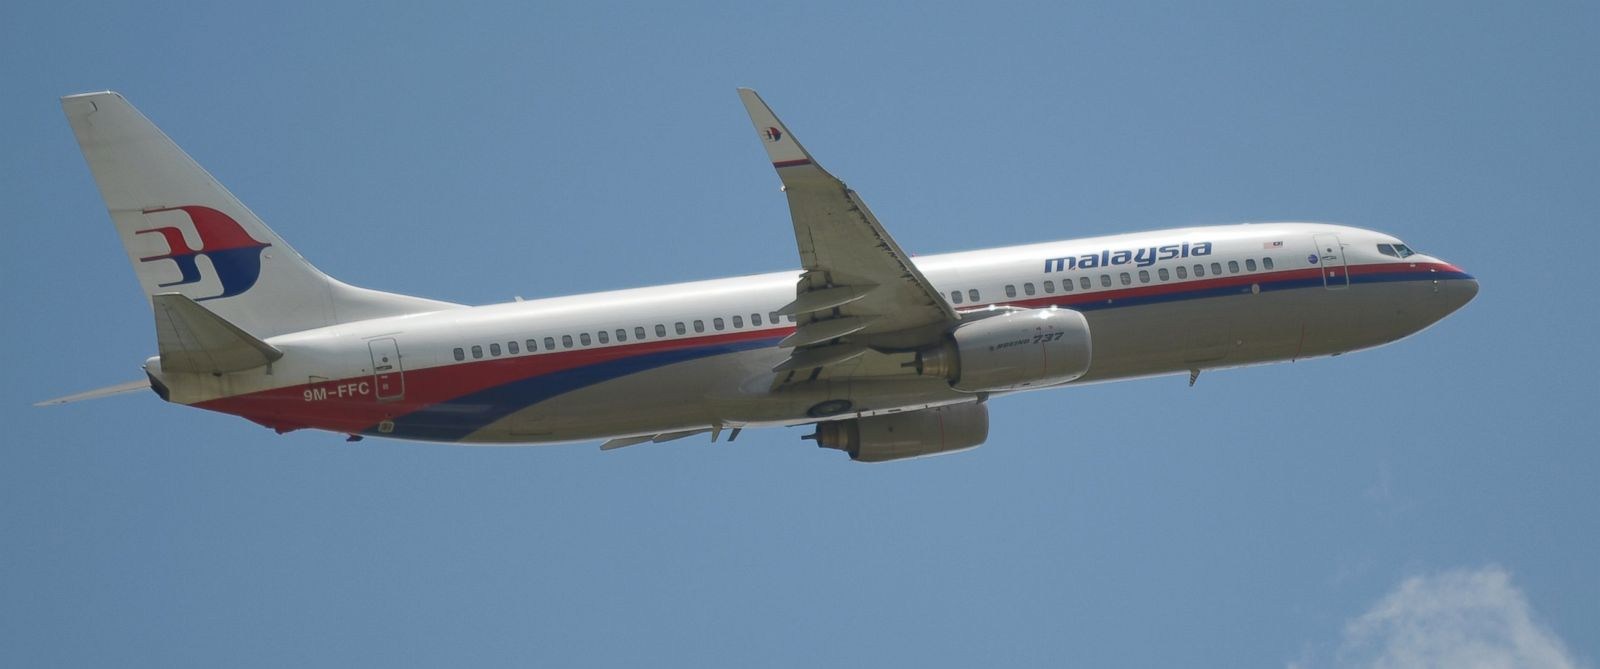 PHOTO: In this file photo, a Malaysia Airlines Boeing 737 plane is pictured flying over the Soekarno–Hatta International Airport in Tangerang, Indonesia on March 18, 2013.